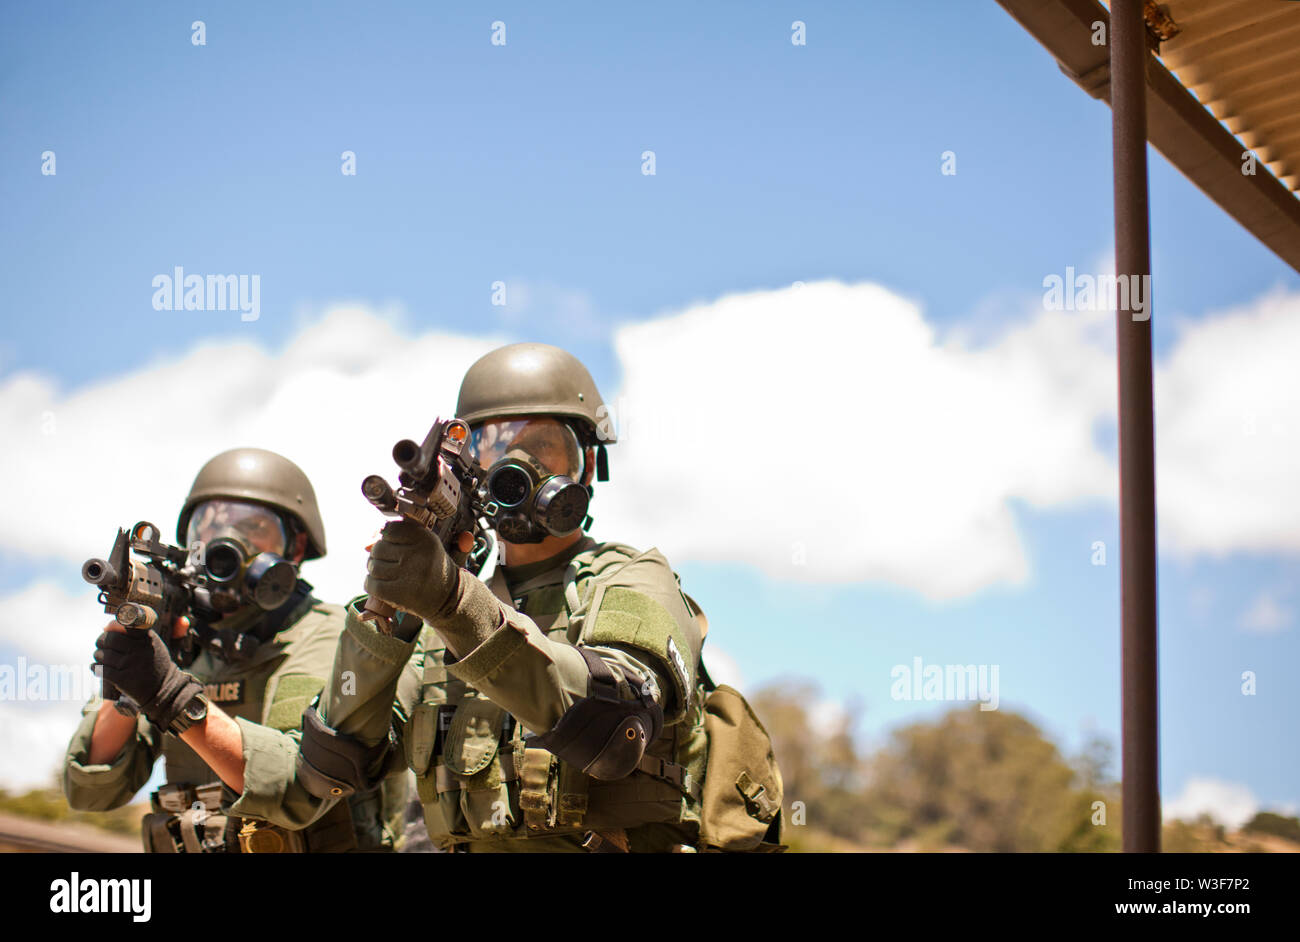 Two police officers point a gun towards a target during an exercise at a training facility. - Stock Image